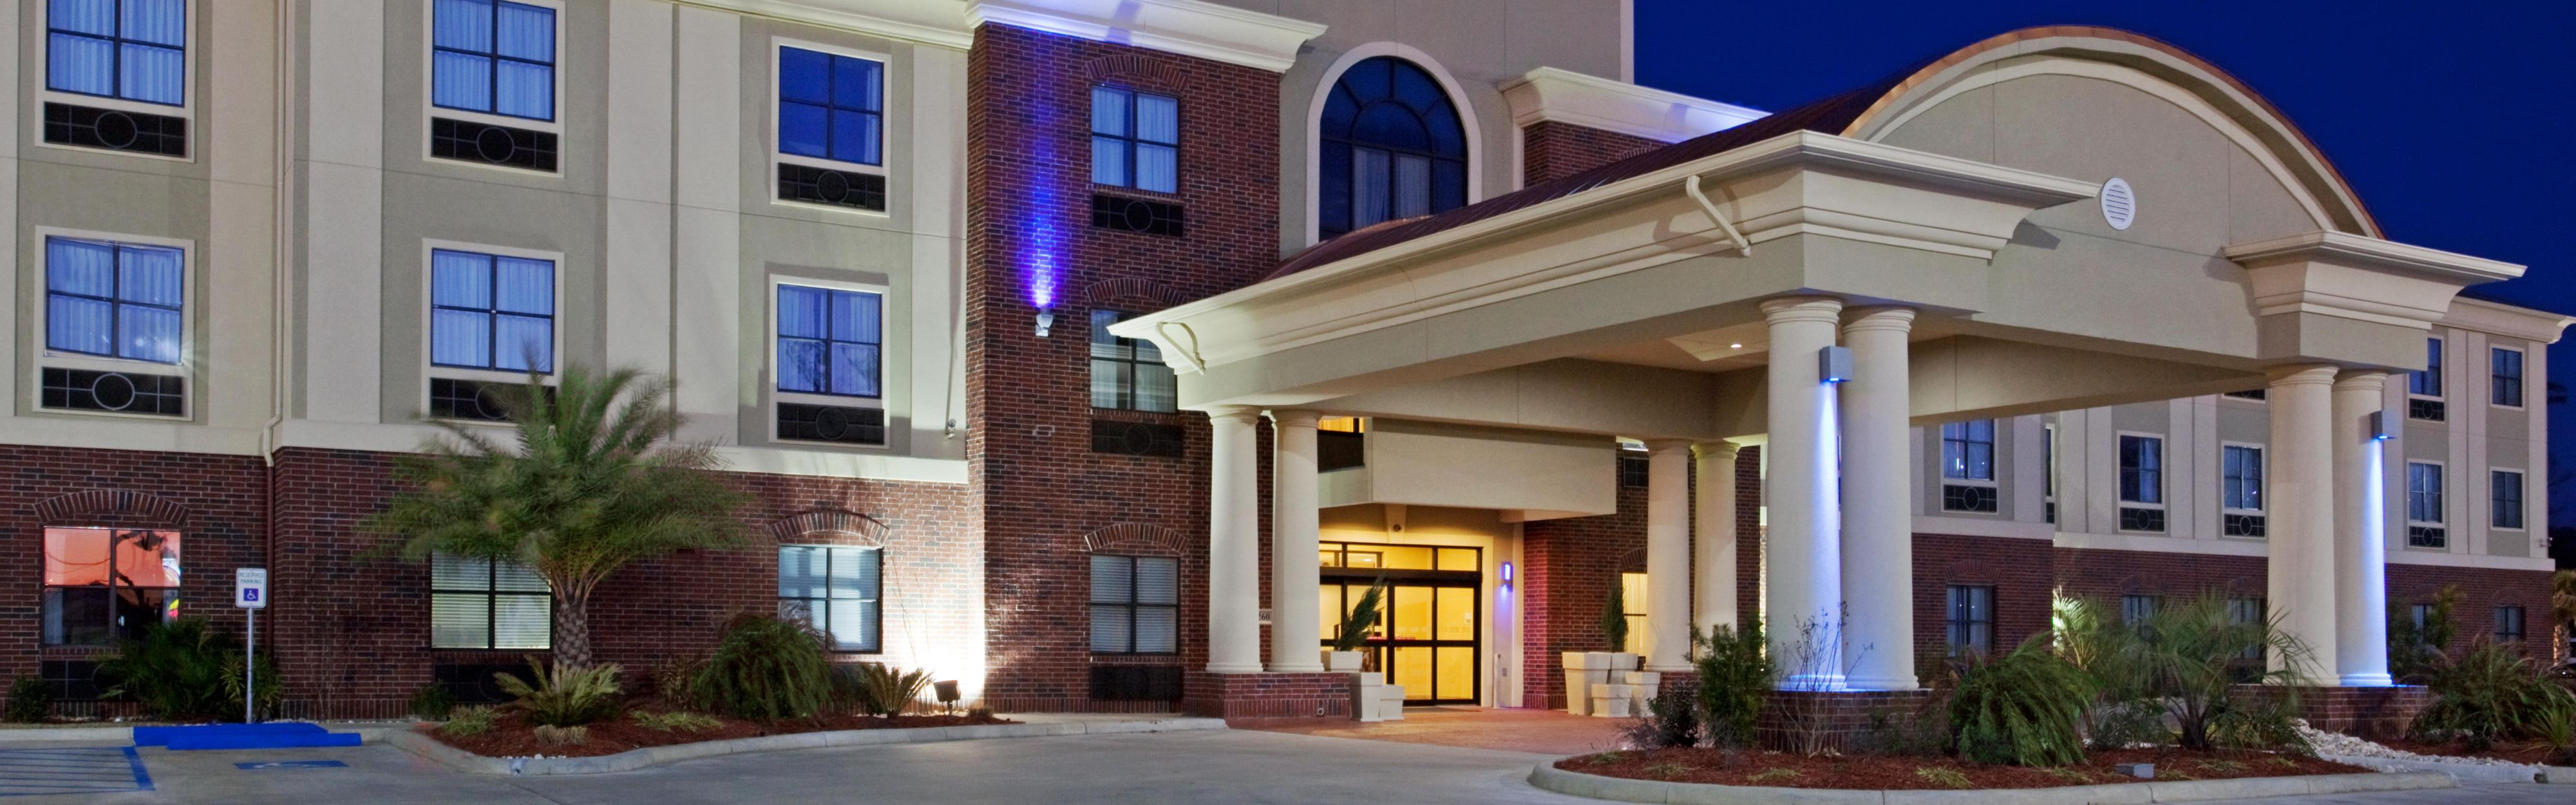 Holiday Inn Express & Suites Vidor South image 0